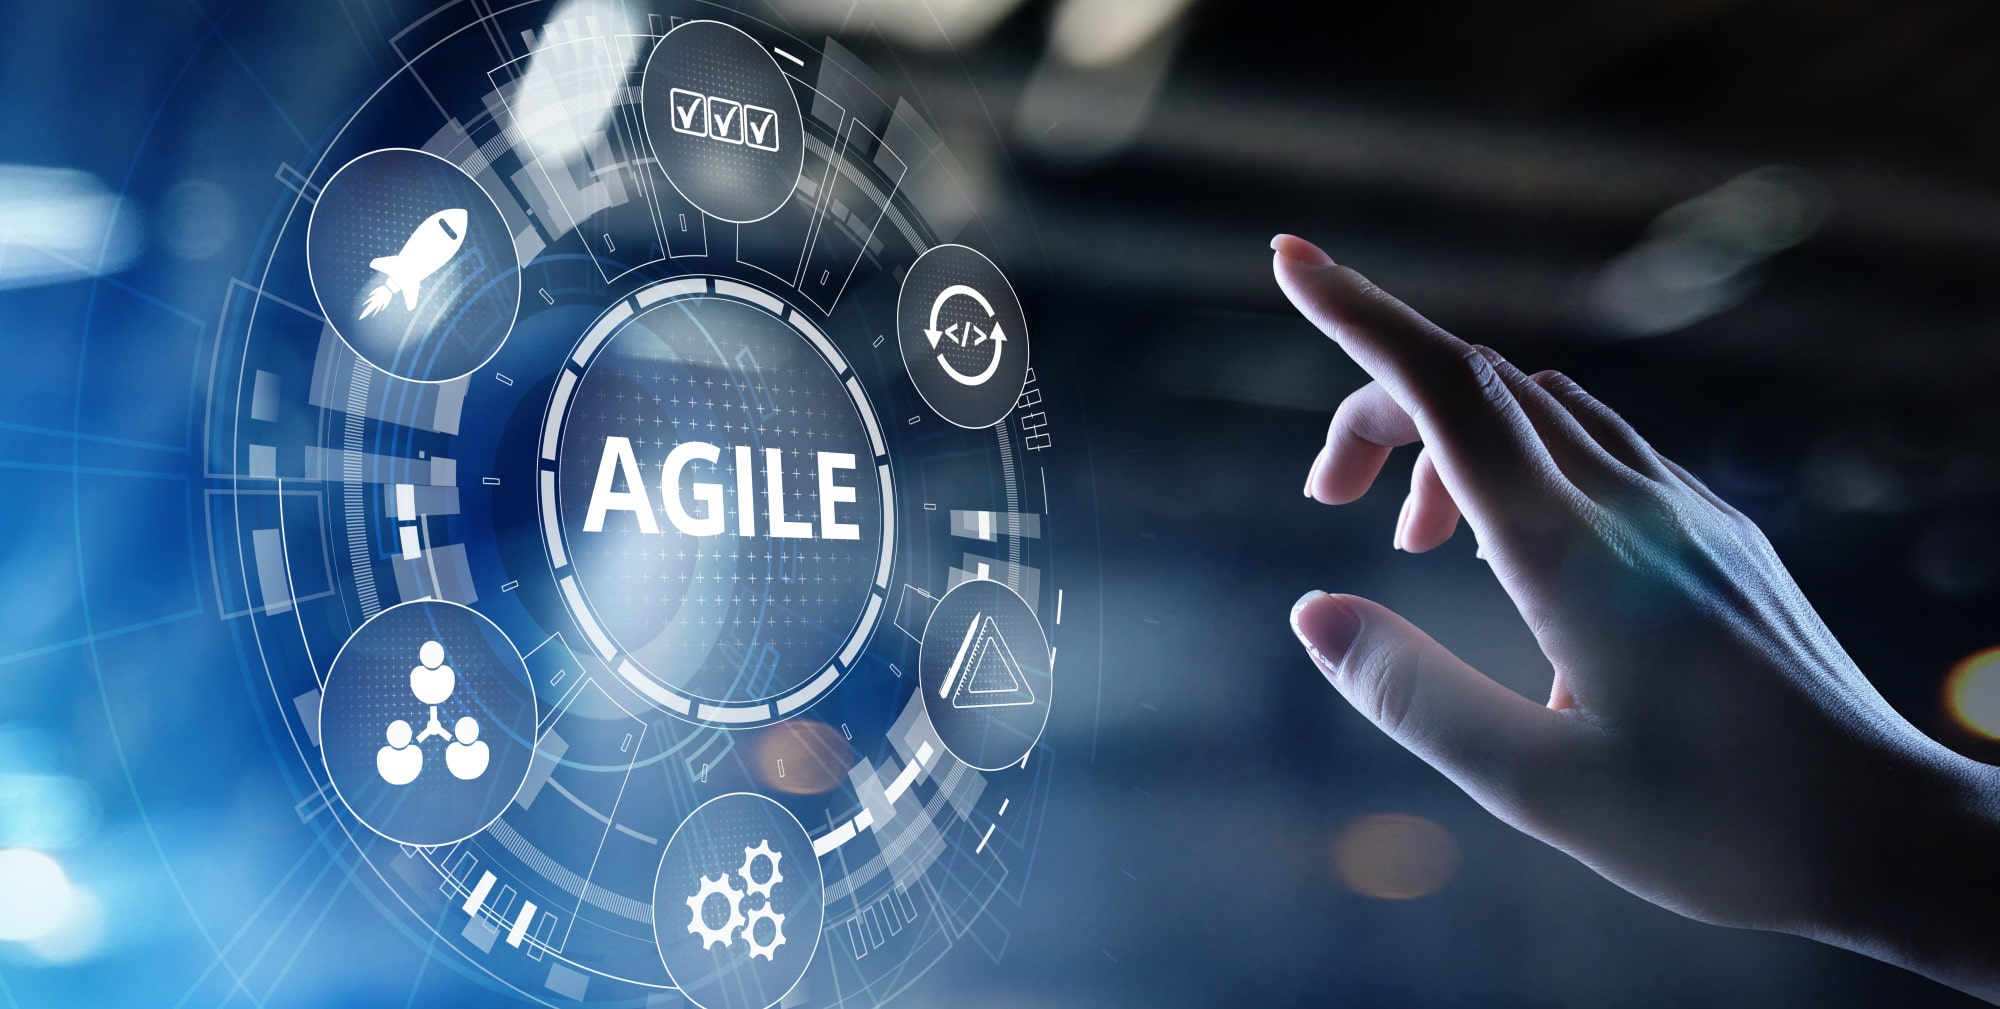 10 Big Benefits of Agile Values and Principles for Project Managers